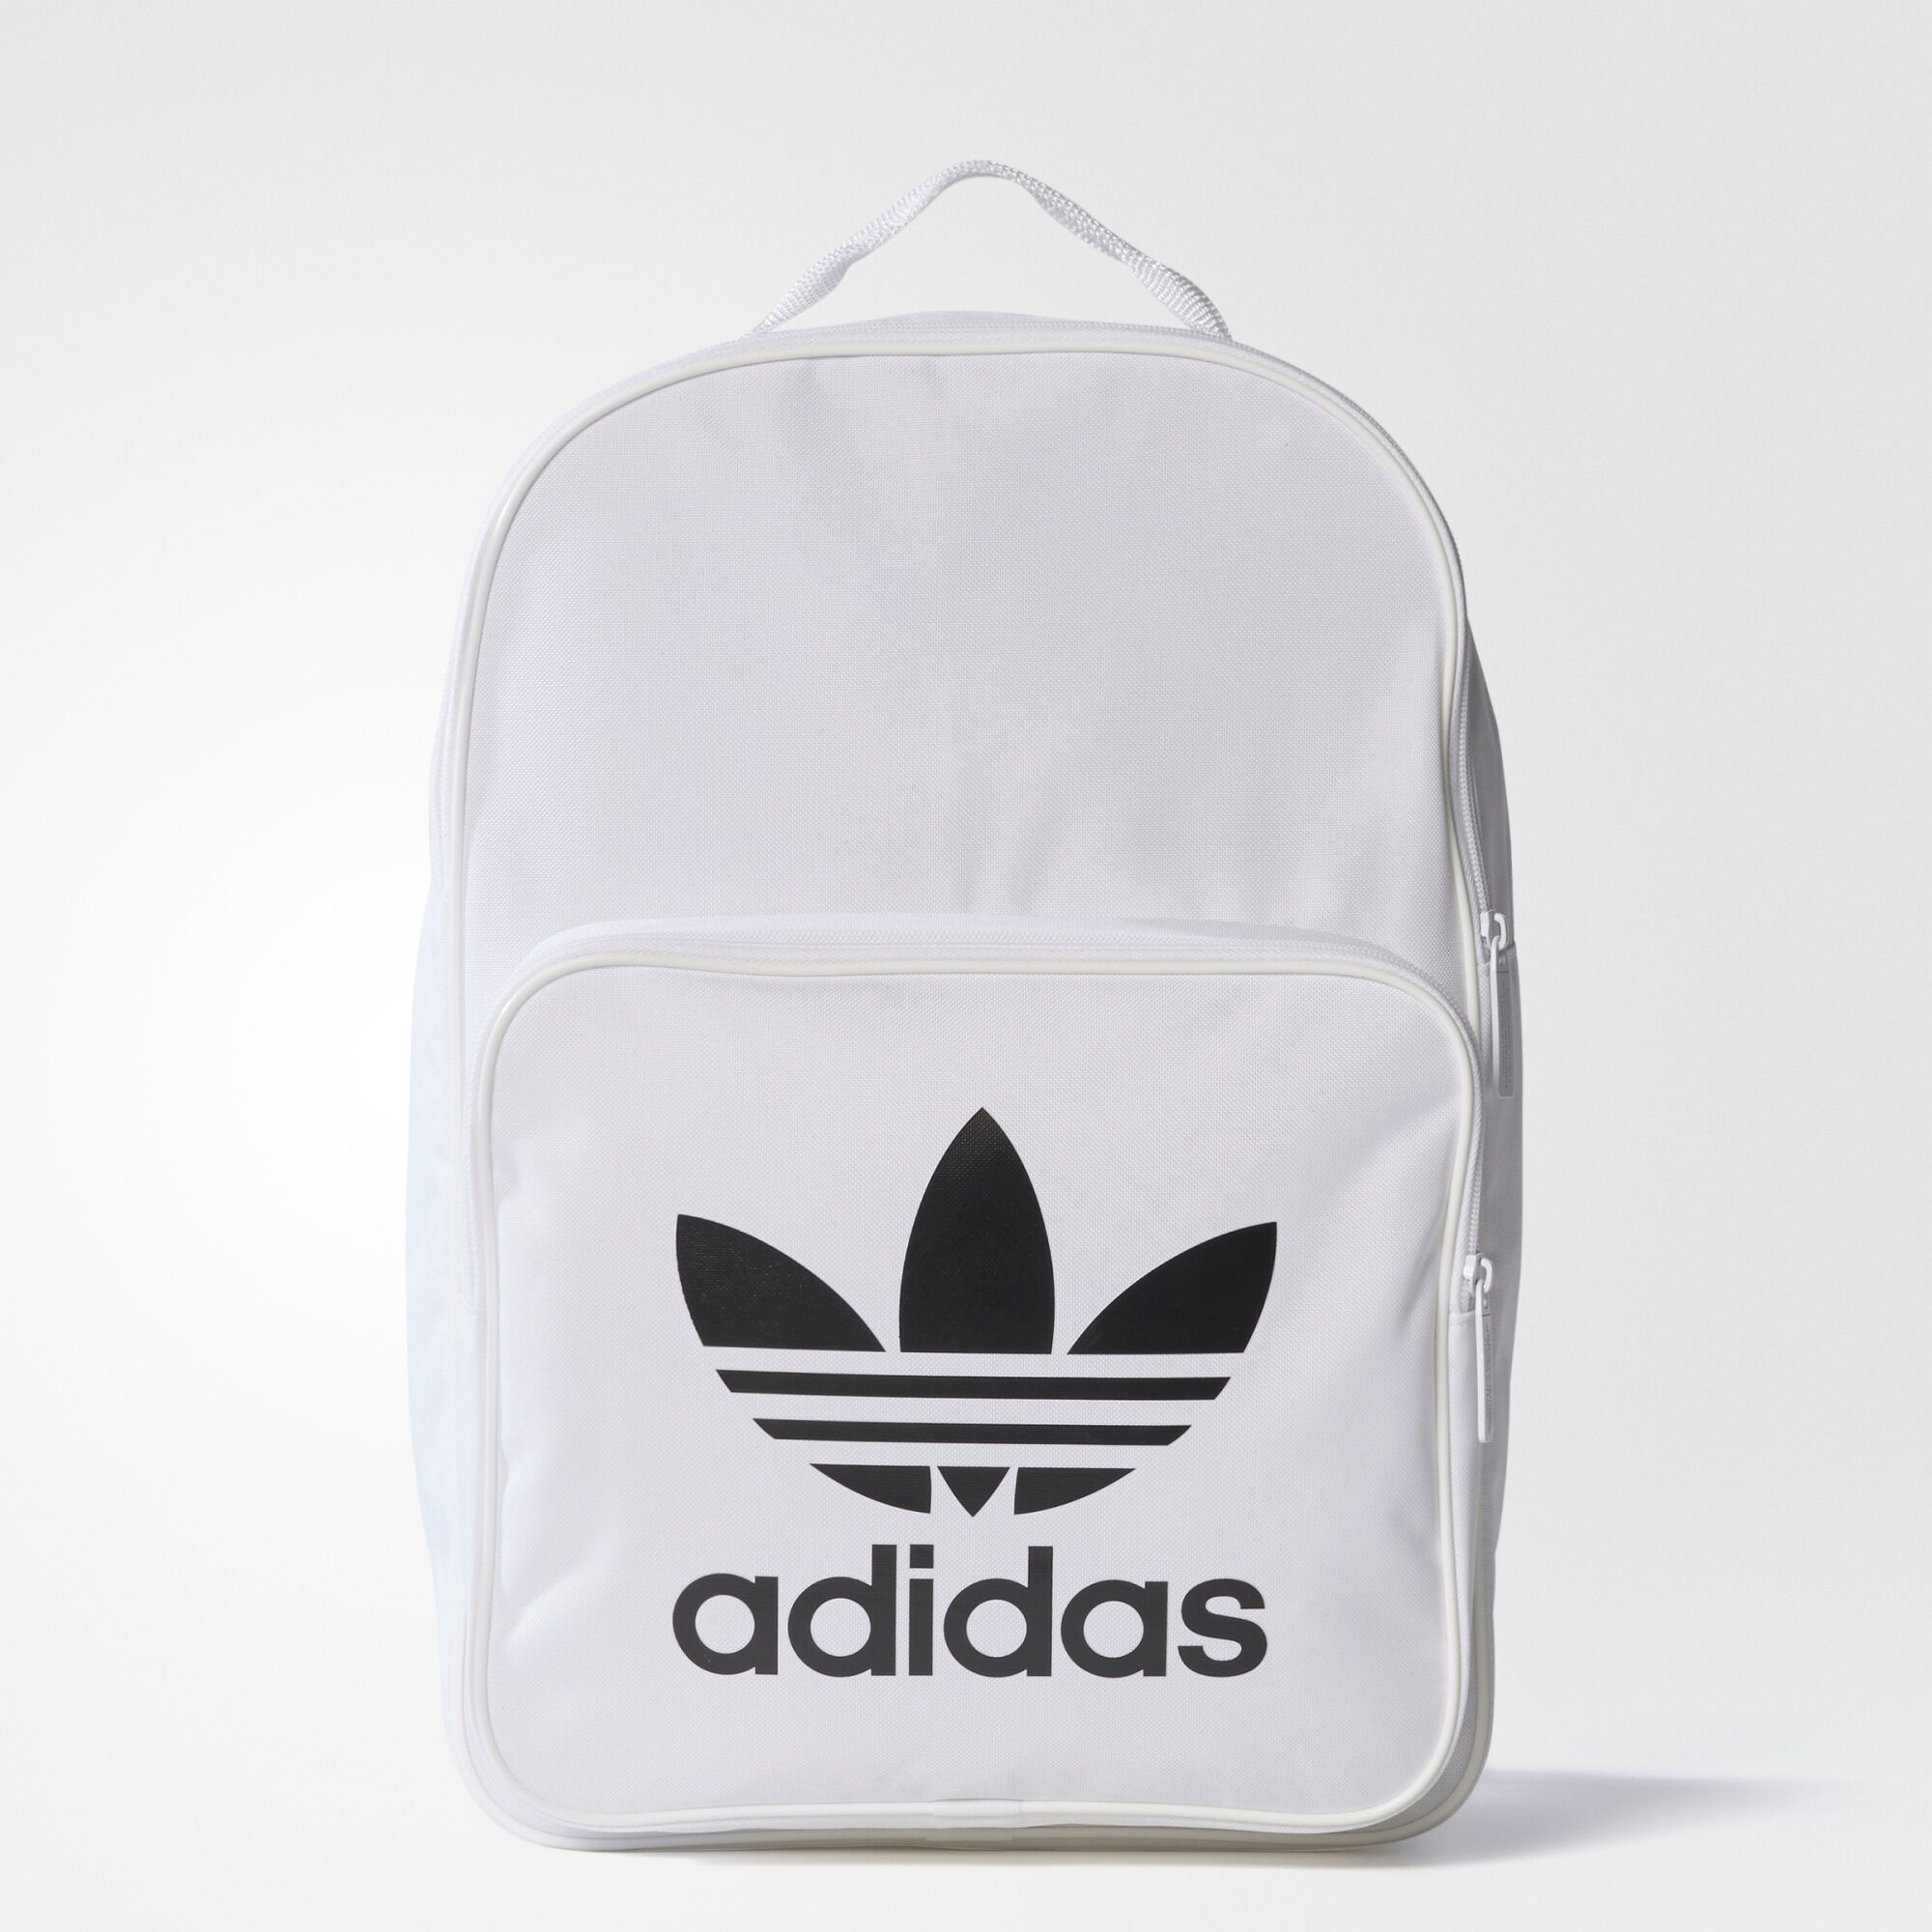 Buy adidas white backpack   OFF79% Discounted ae5049d93bebb